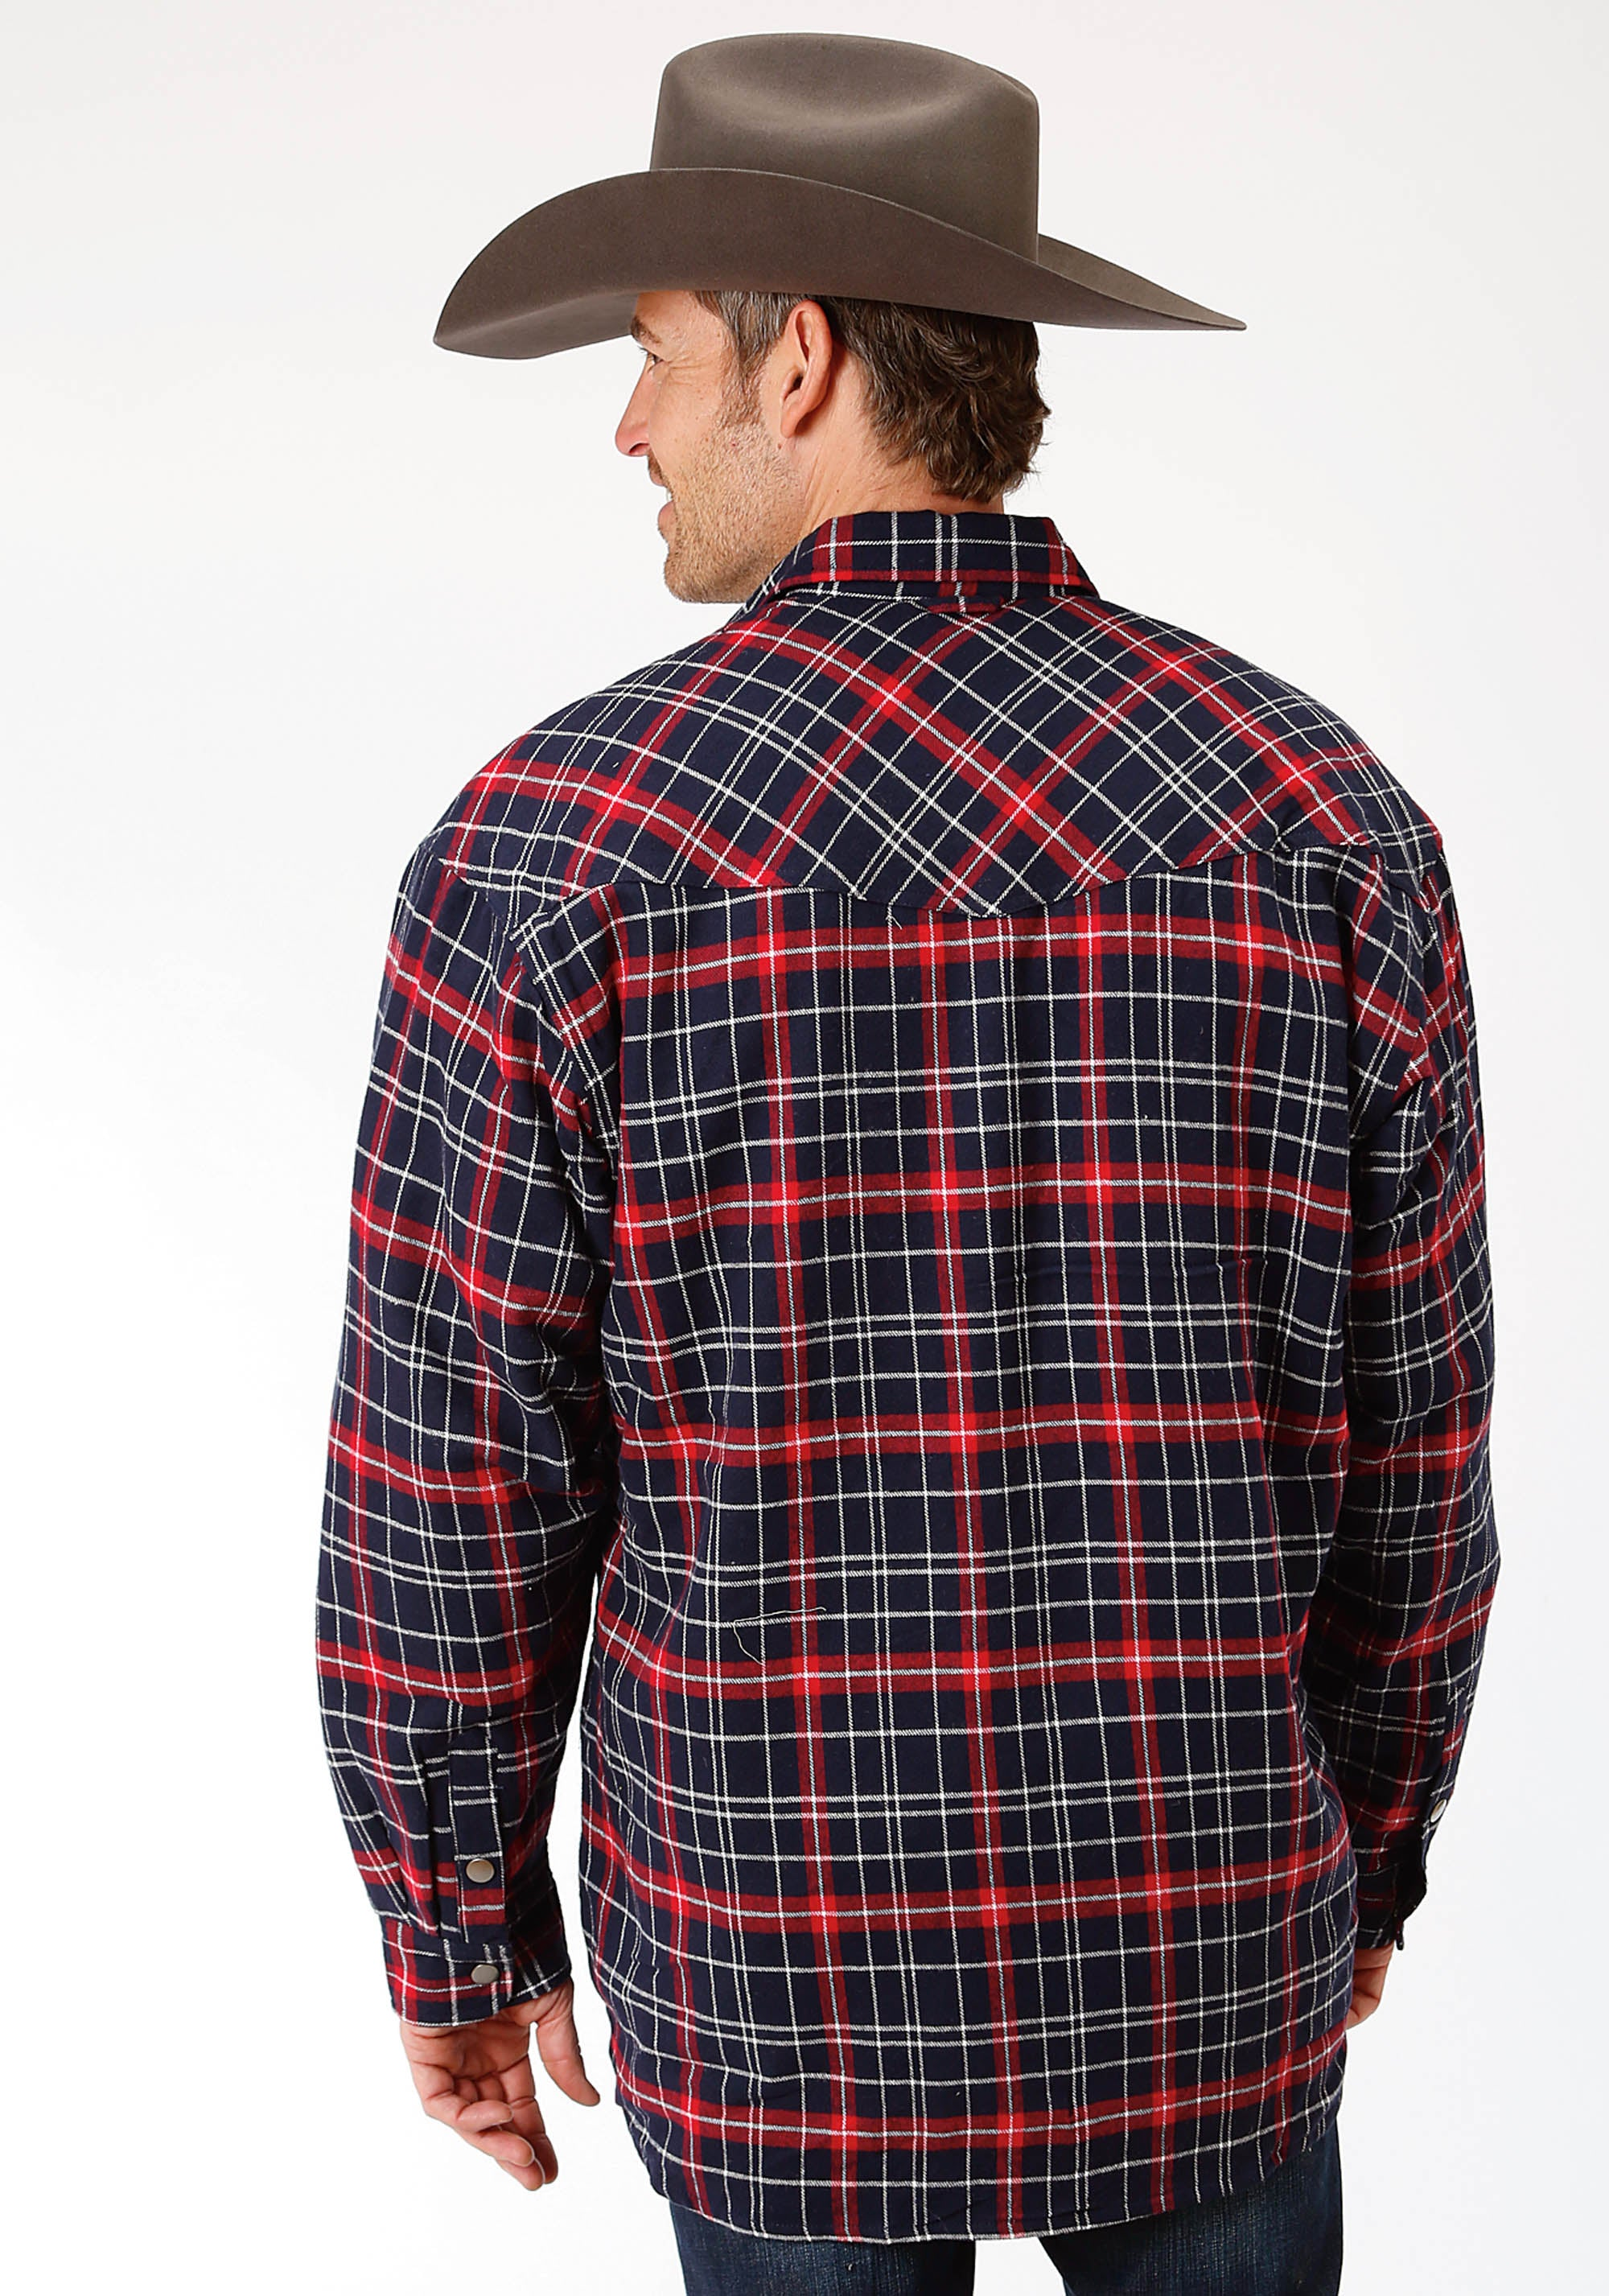 OUTERWEAR MENS RED 9372 RE/NA PLAID SHERPA LINED JCKT PRE-PACK